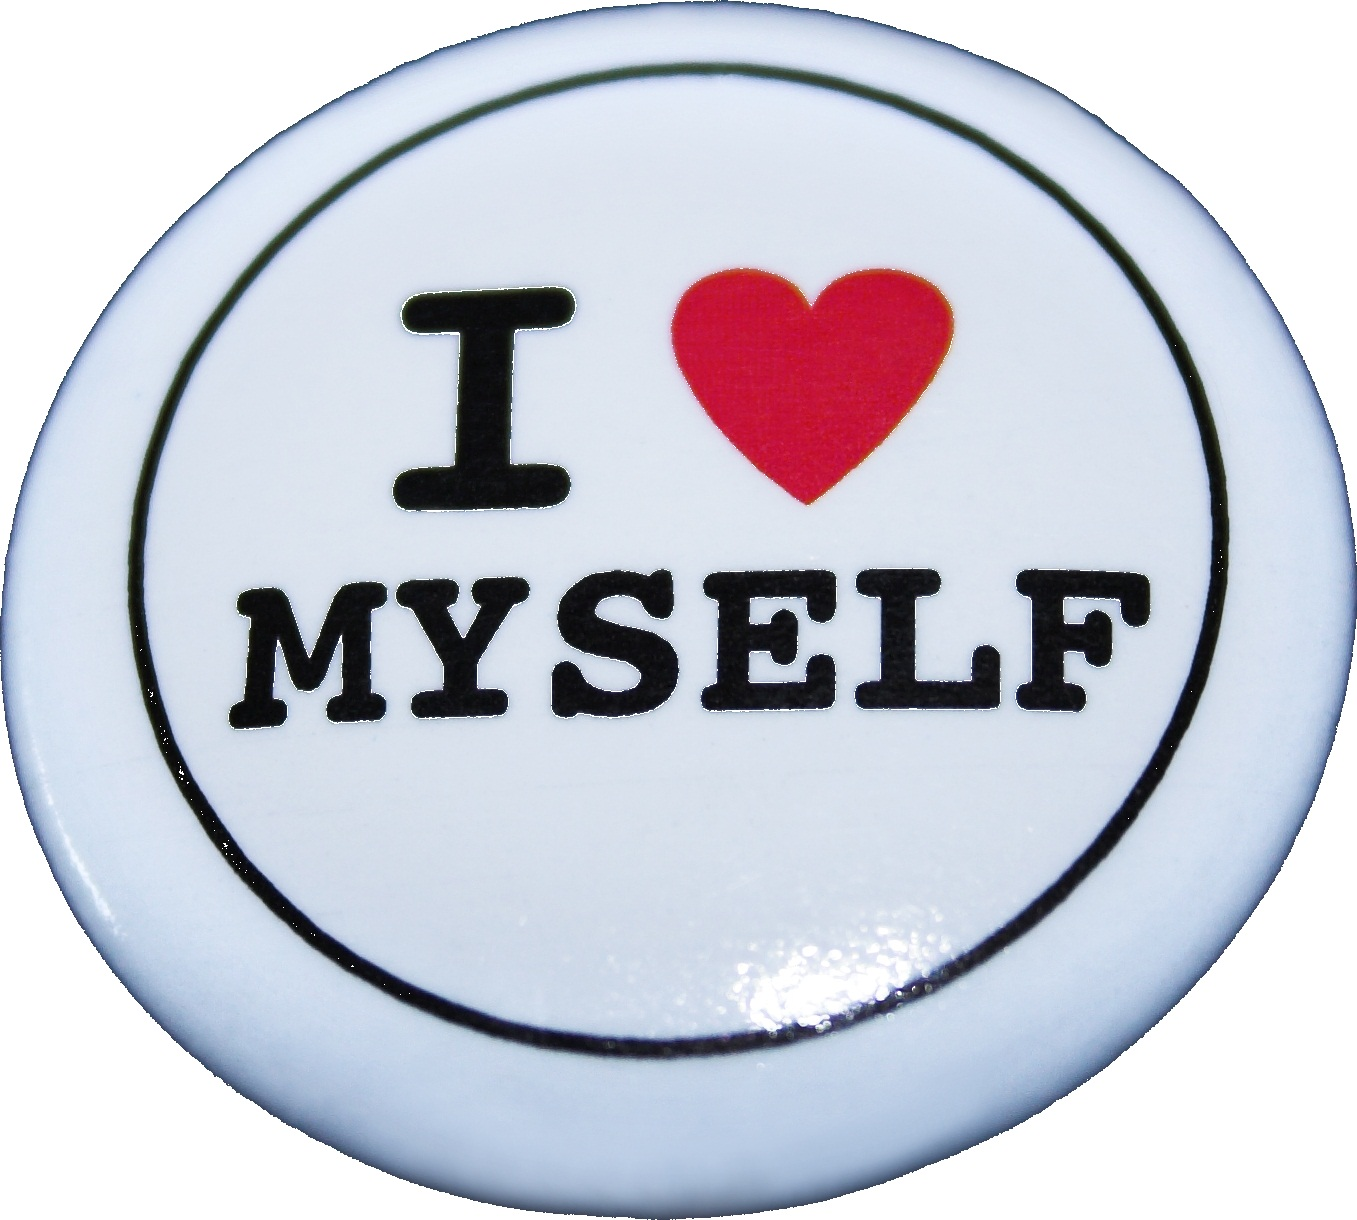 chang s taekwondo word of the week self esteem knowing that you students are encouraged to recognize their own self esteem here at chang s taekwondo martial arts white rock cloverdale everyday they train kicking and